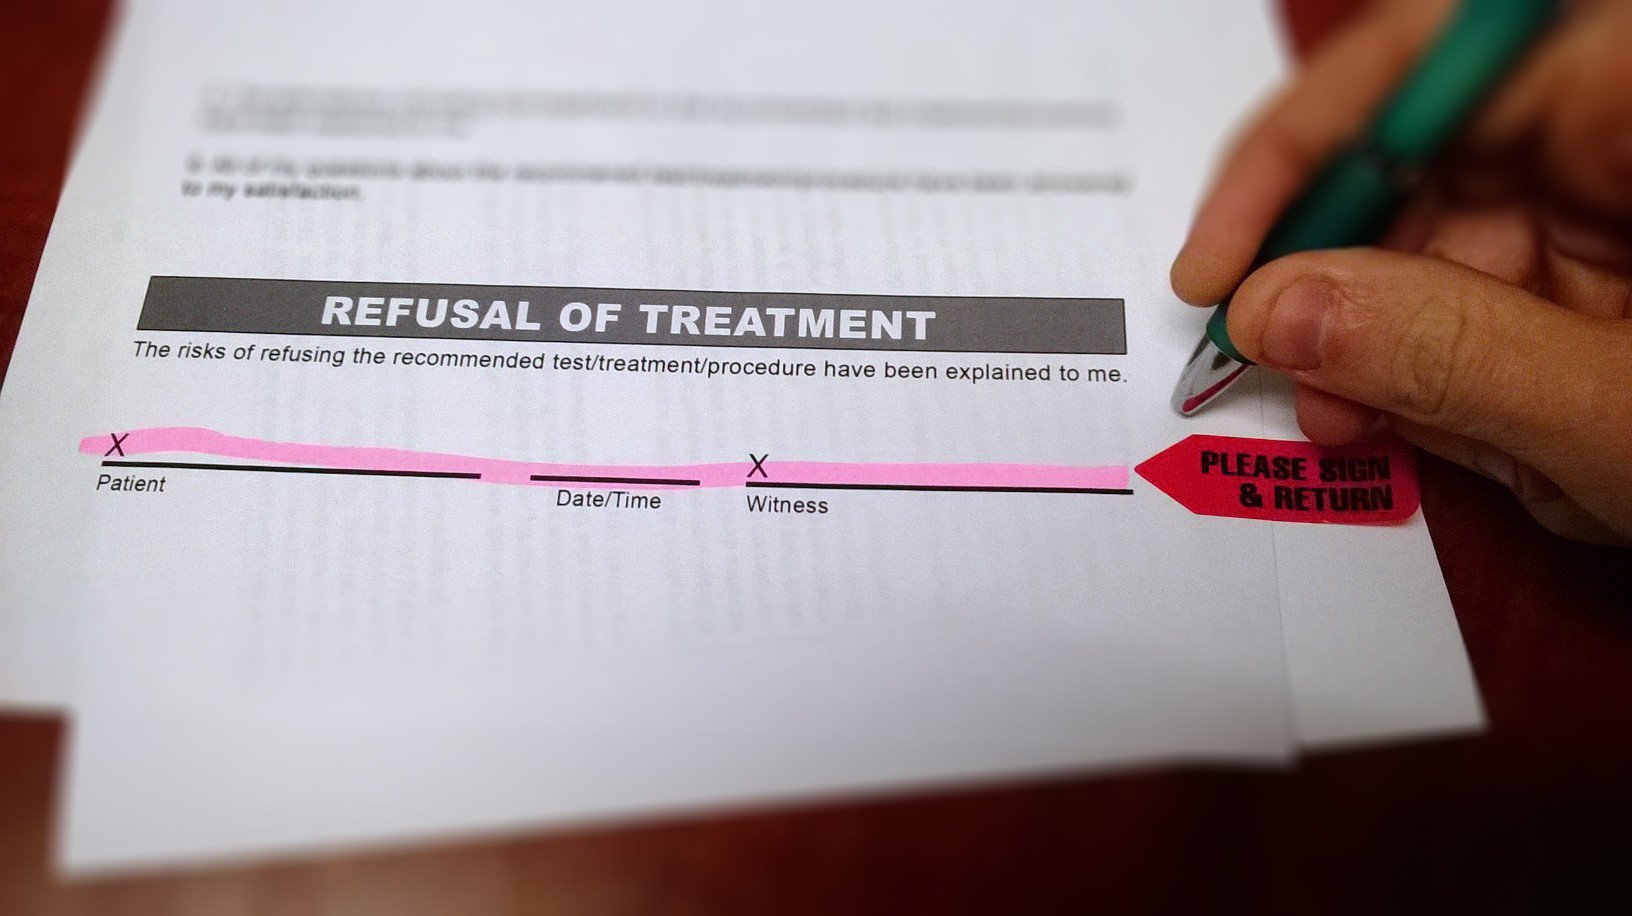 Refusal Of Treatment form File Refusal Of Treatment